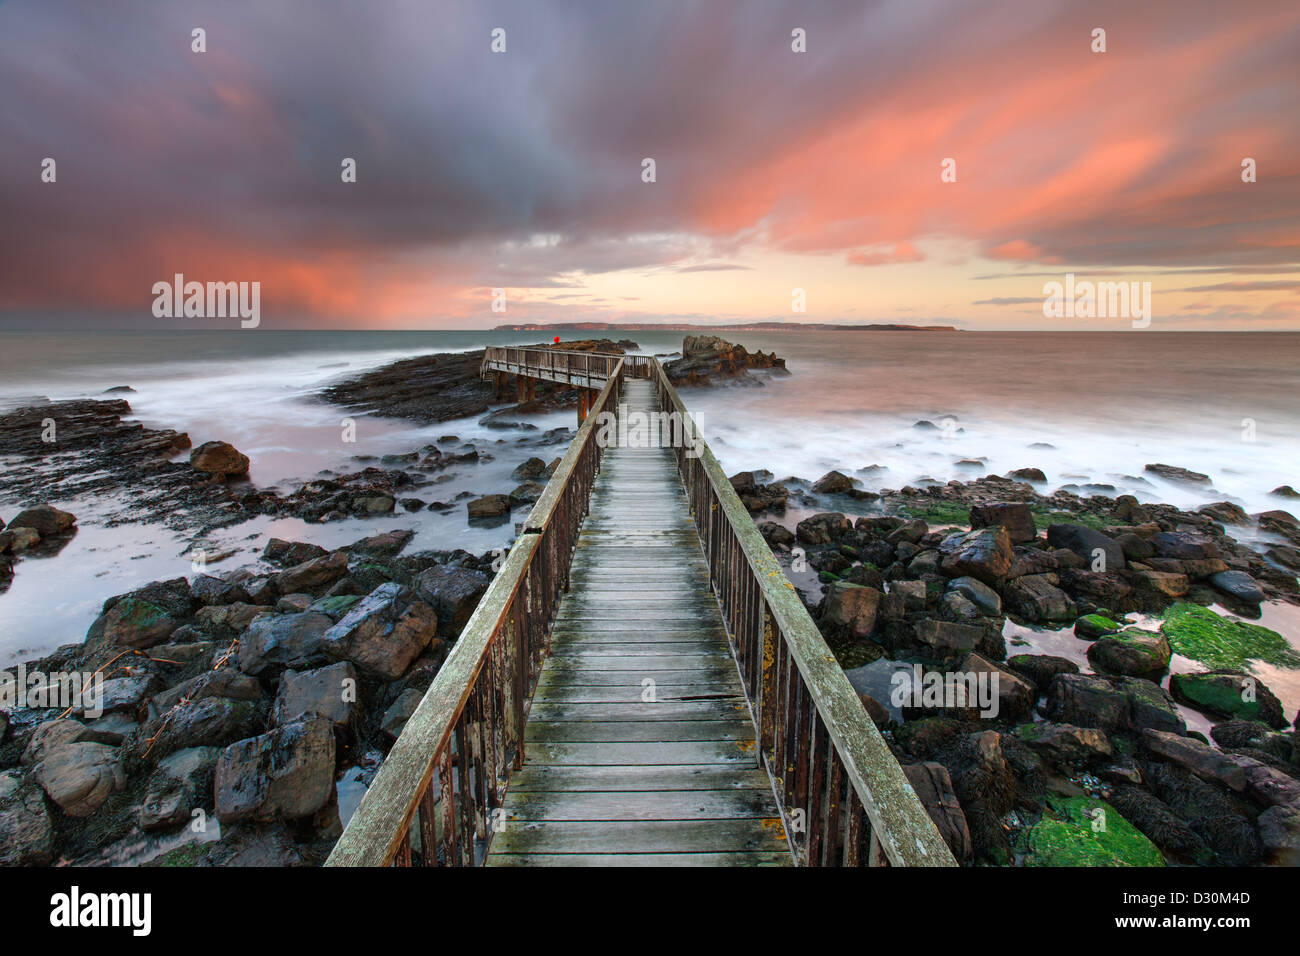 Casseroles Rocks Jetty, strand beach, Ballycastle. Photo Stock